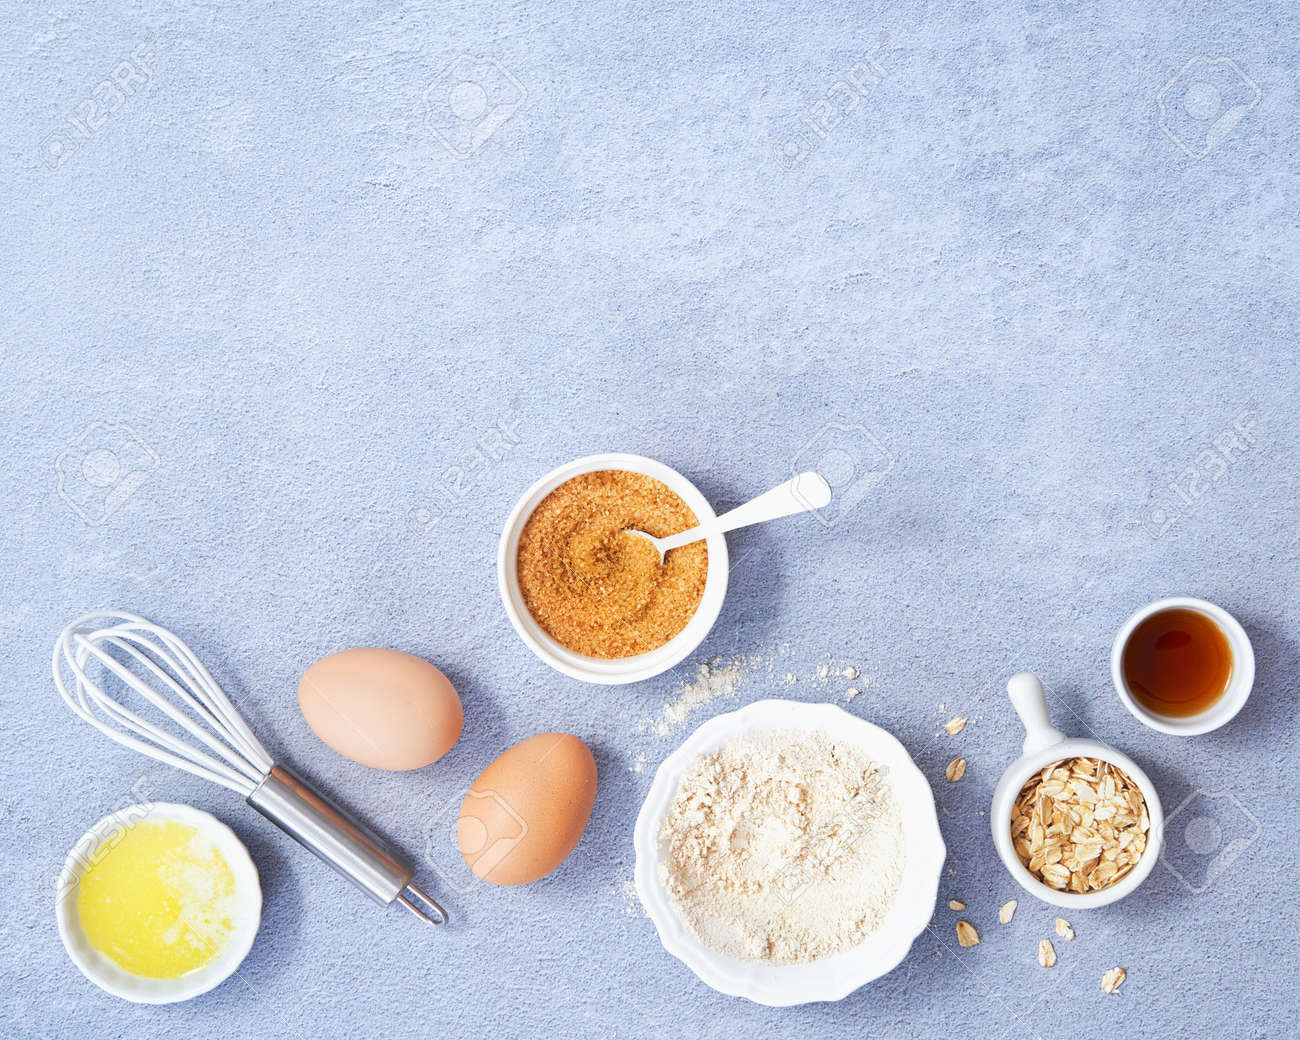 Ingredients for homemade oat pancake with whole grain oat, coconut sugar, vanilla syrup, organic eggs on light blue background. Healthy food recipe photography. Top view. Copy Space for text. - 171867015